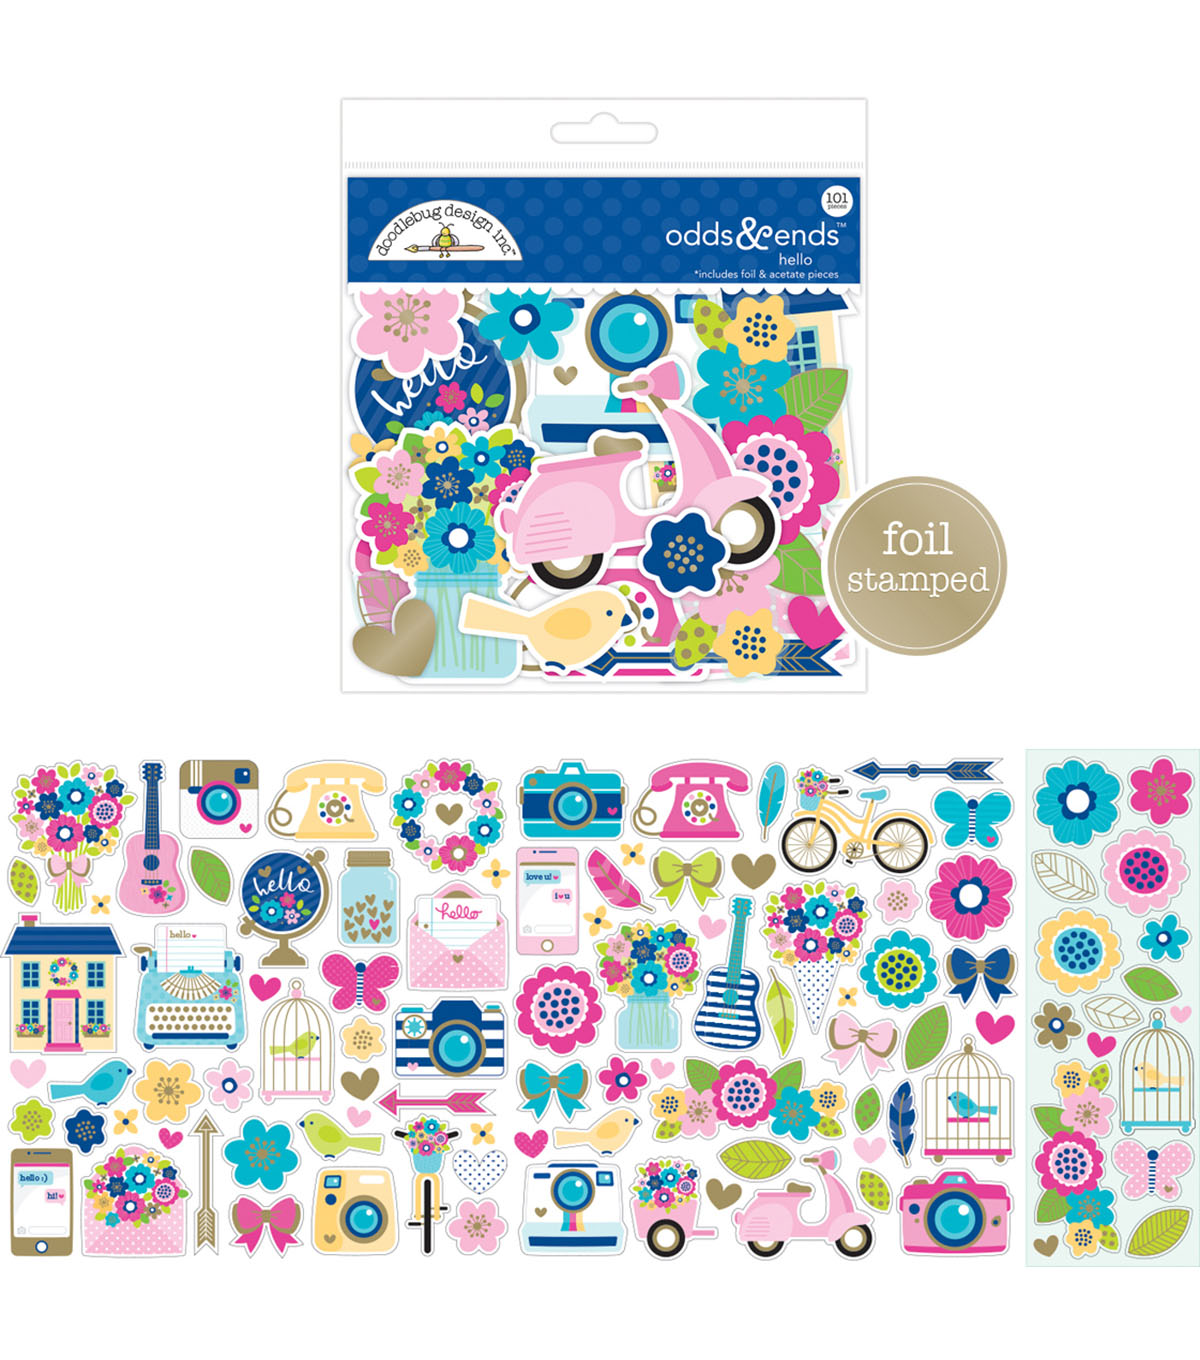 Doodlebug Design Hello Odds & Ends 101 pk Die-Cuts